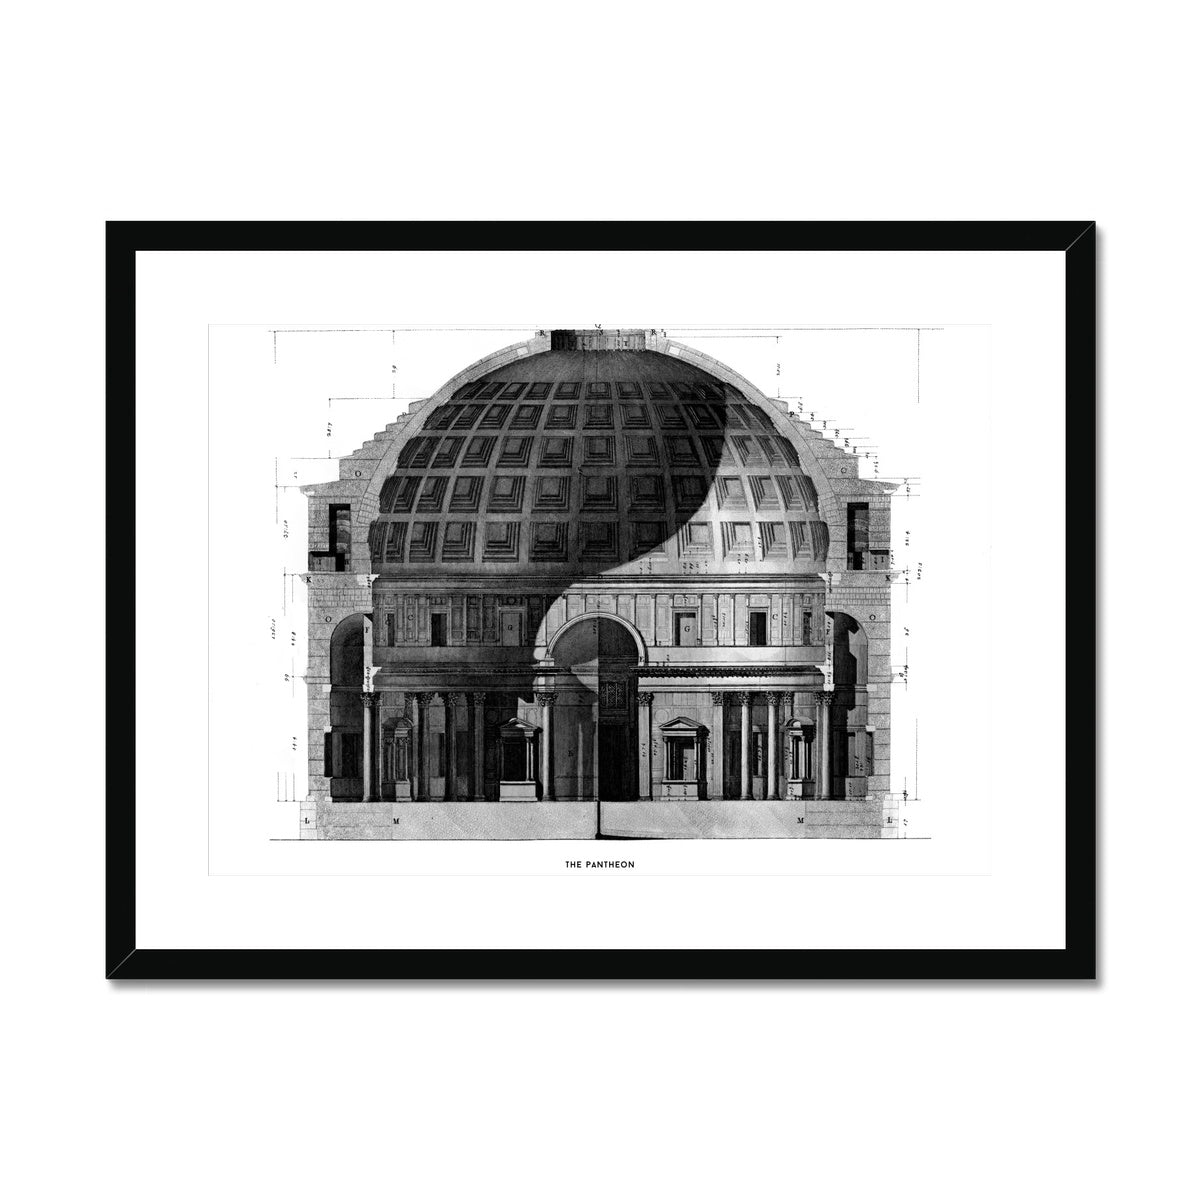 The Pantheon - Primary Elevation Cross Section -  Framed & Mounted Print